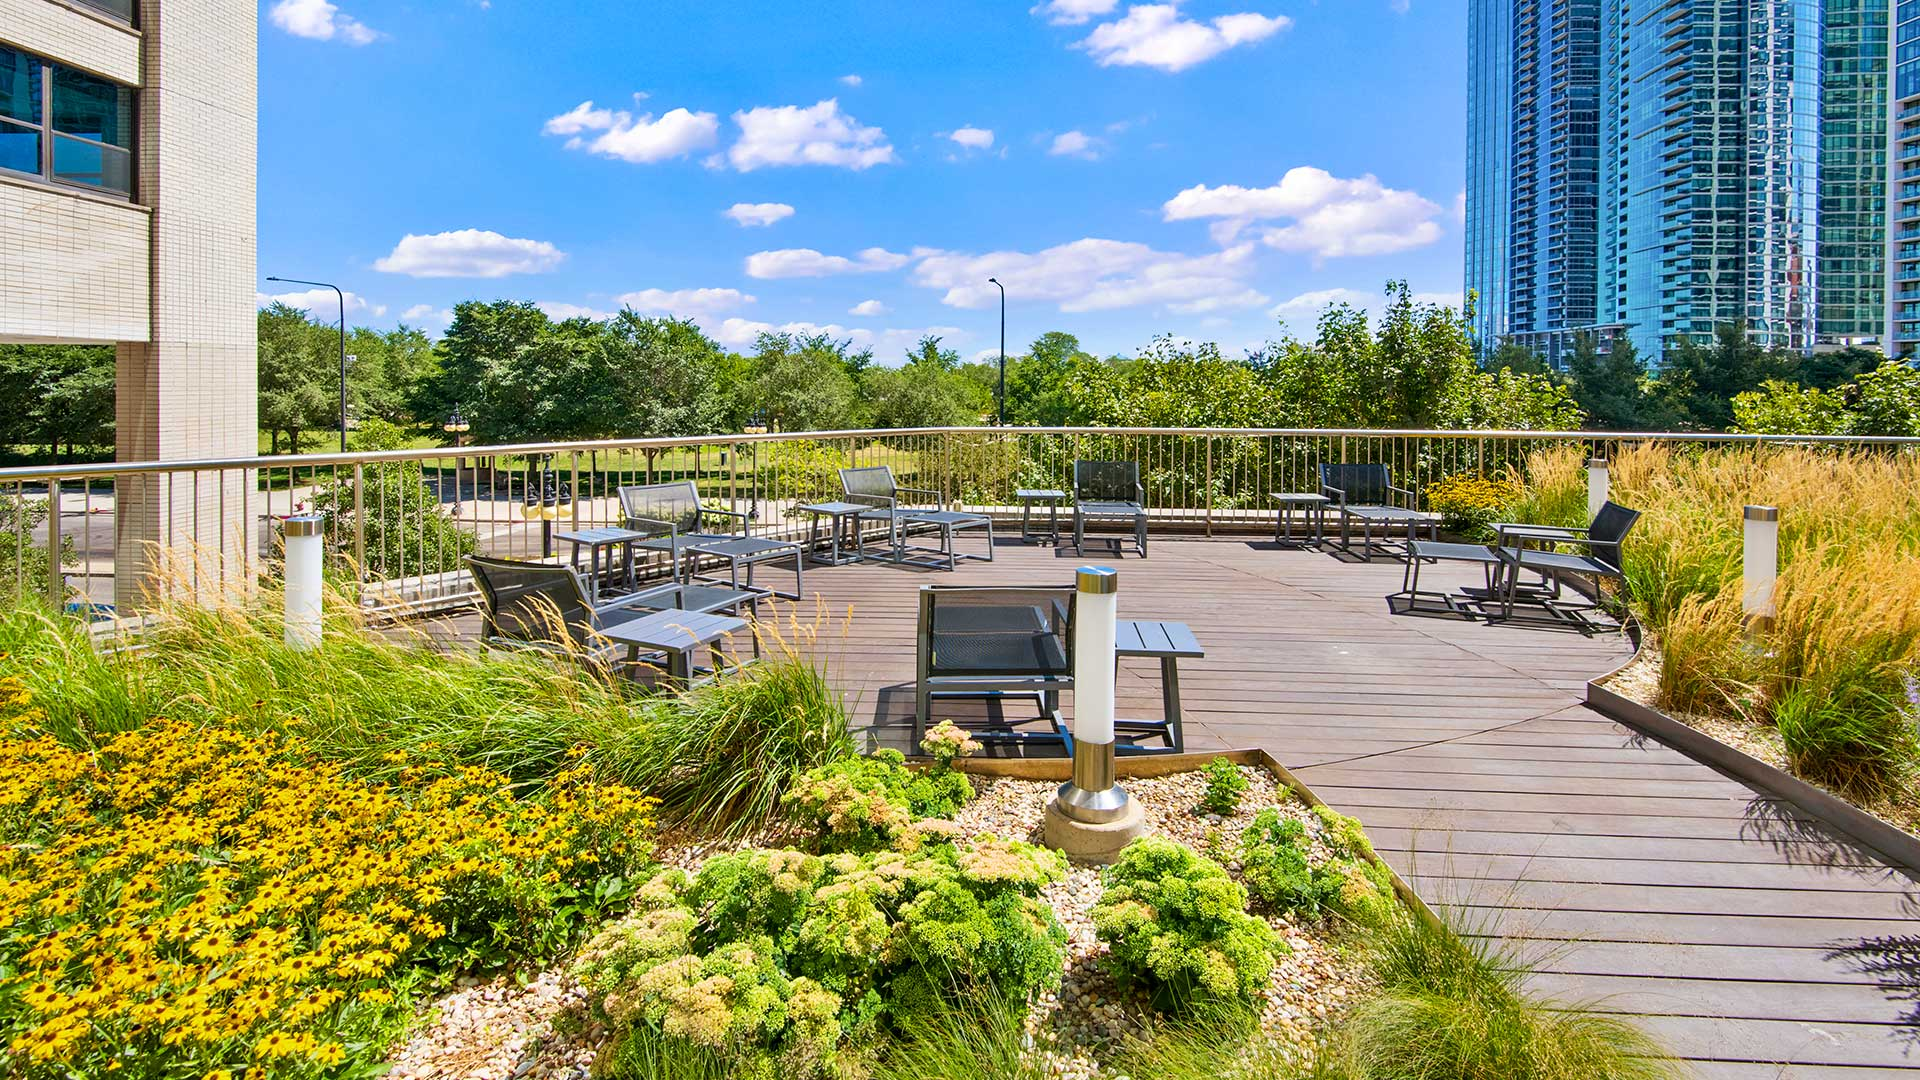 Pretty flowers surround a sitting area on the Eleven Thirty sundeck. Grant Park is seen over the balcony on a sunny day.